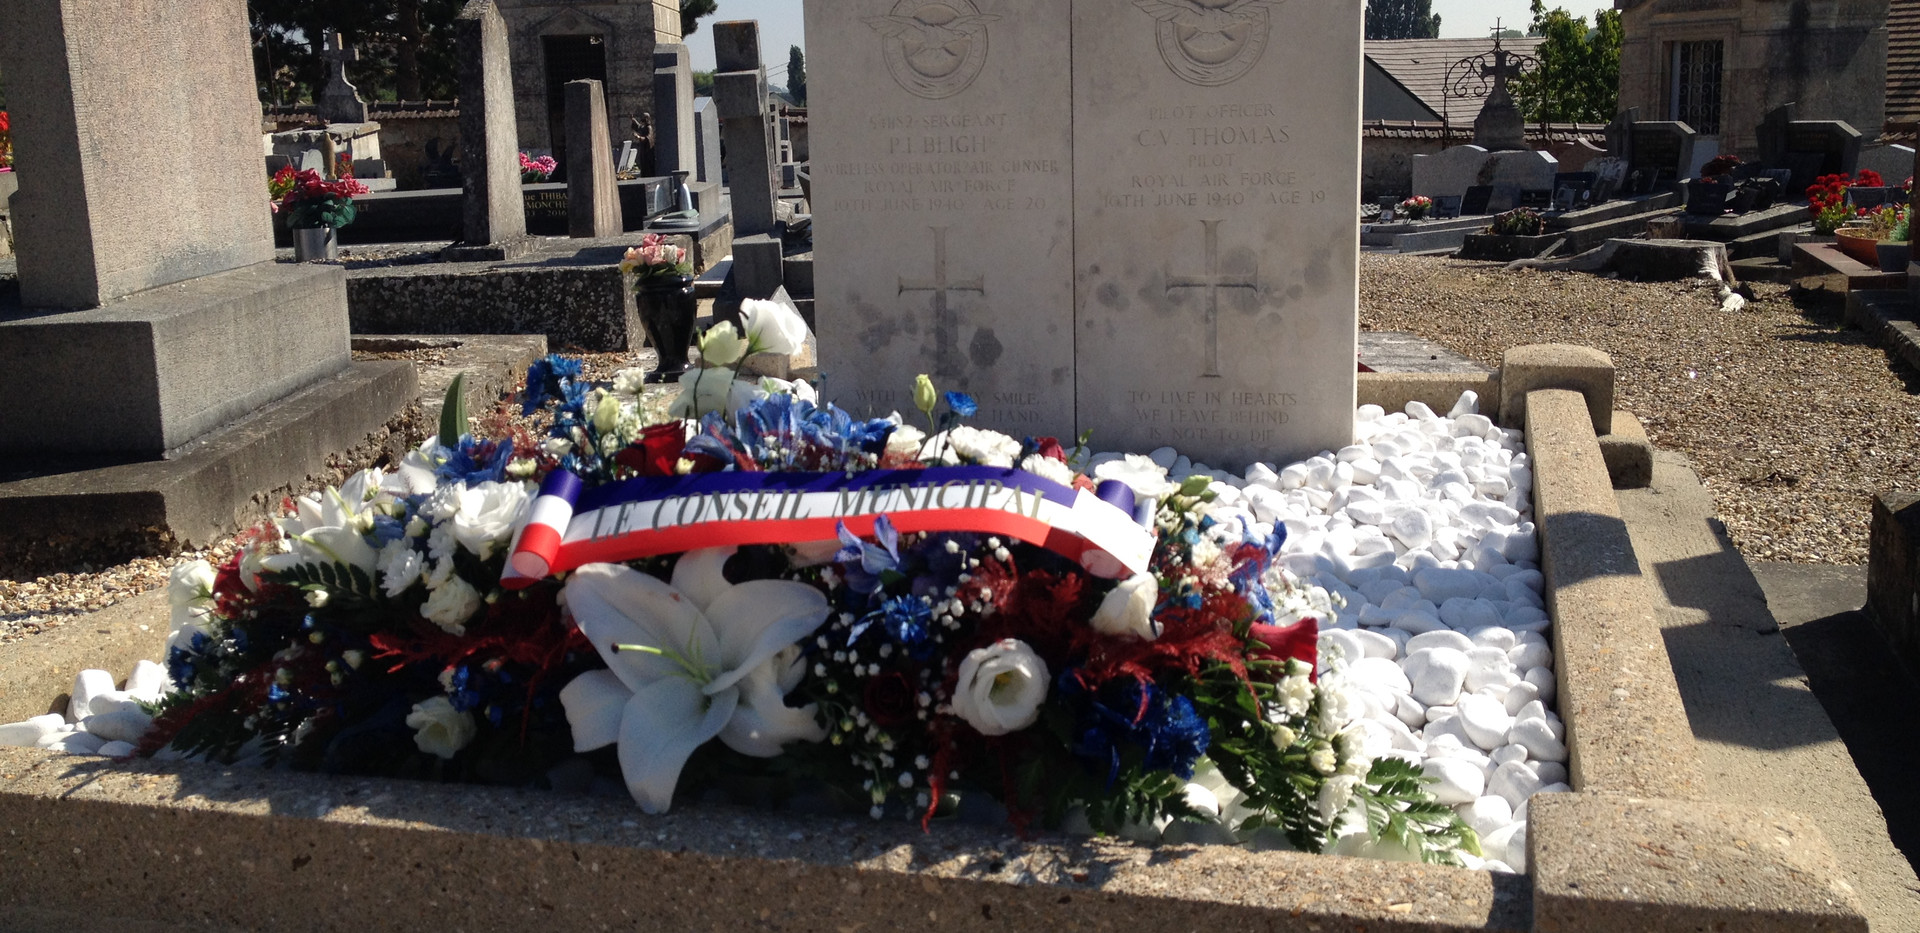 The graves of P/O Thomas and LAC Bligh